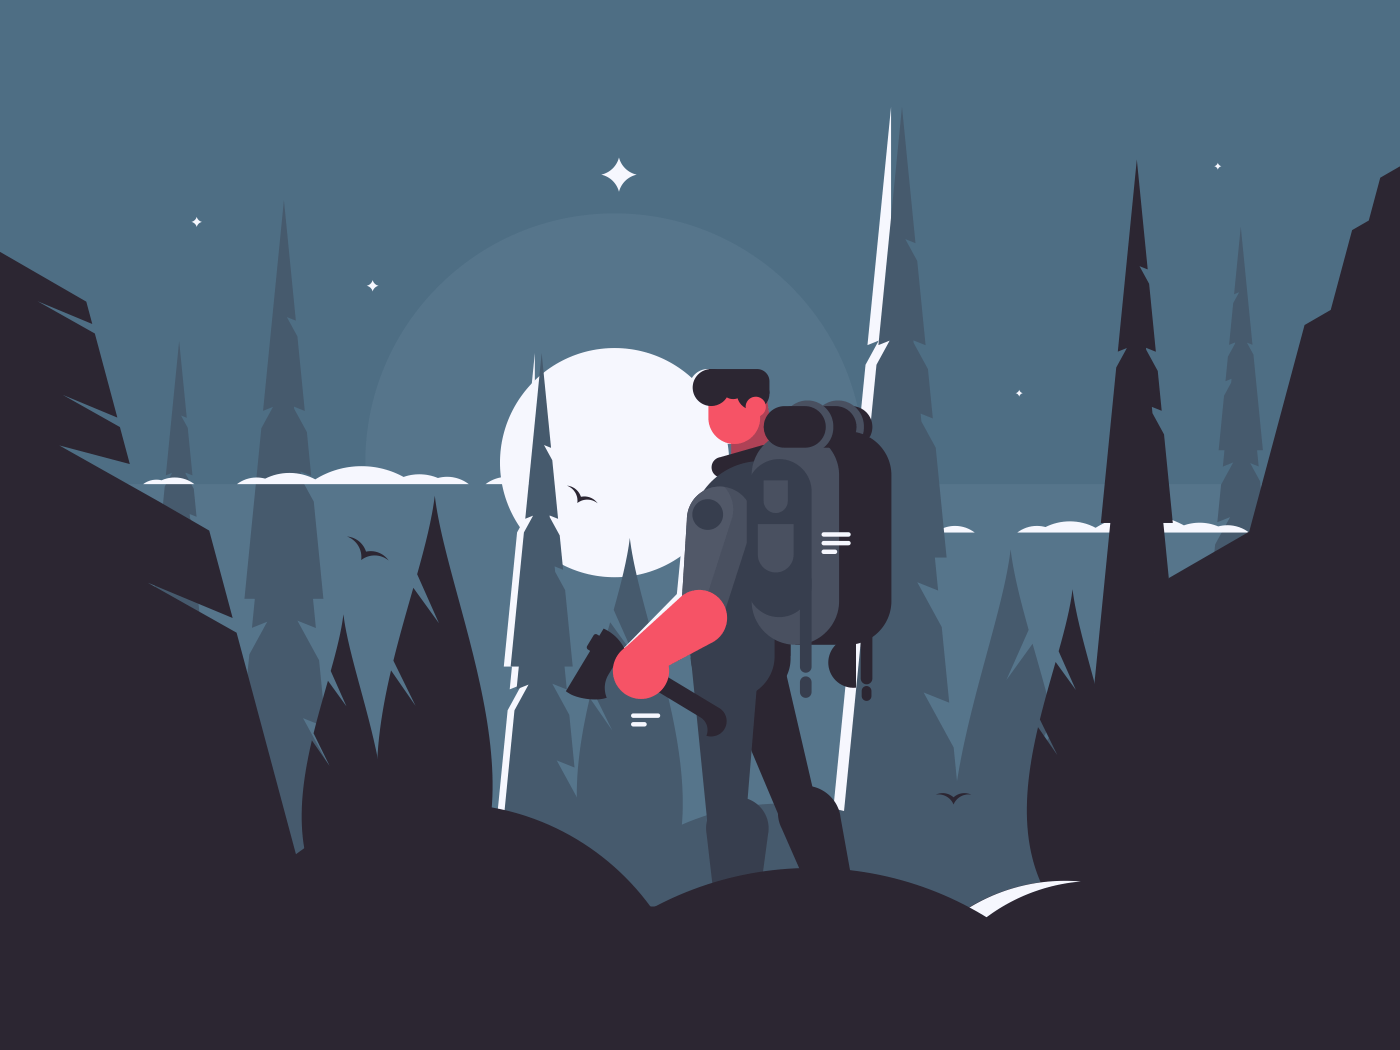 Man traveler in night hike with backpack and ax. Vector illustration